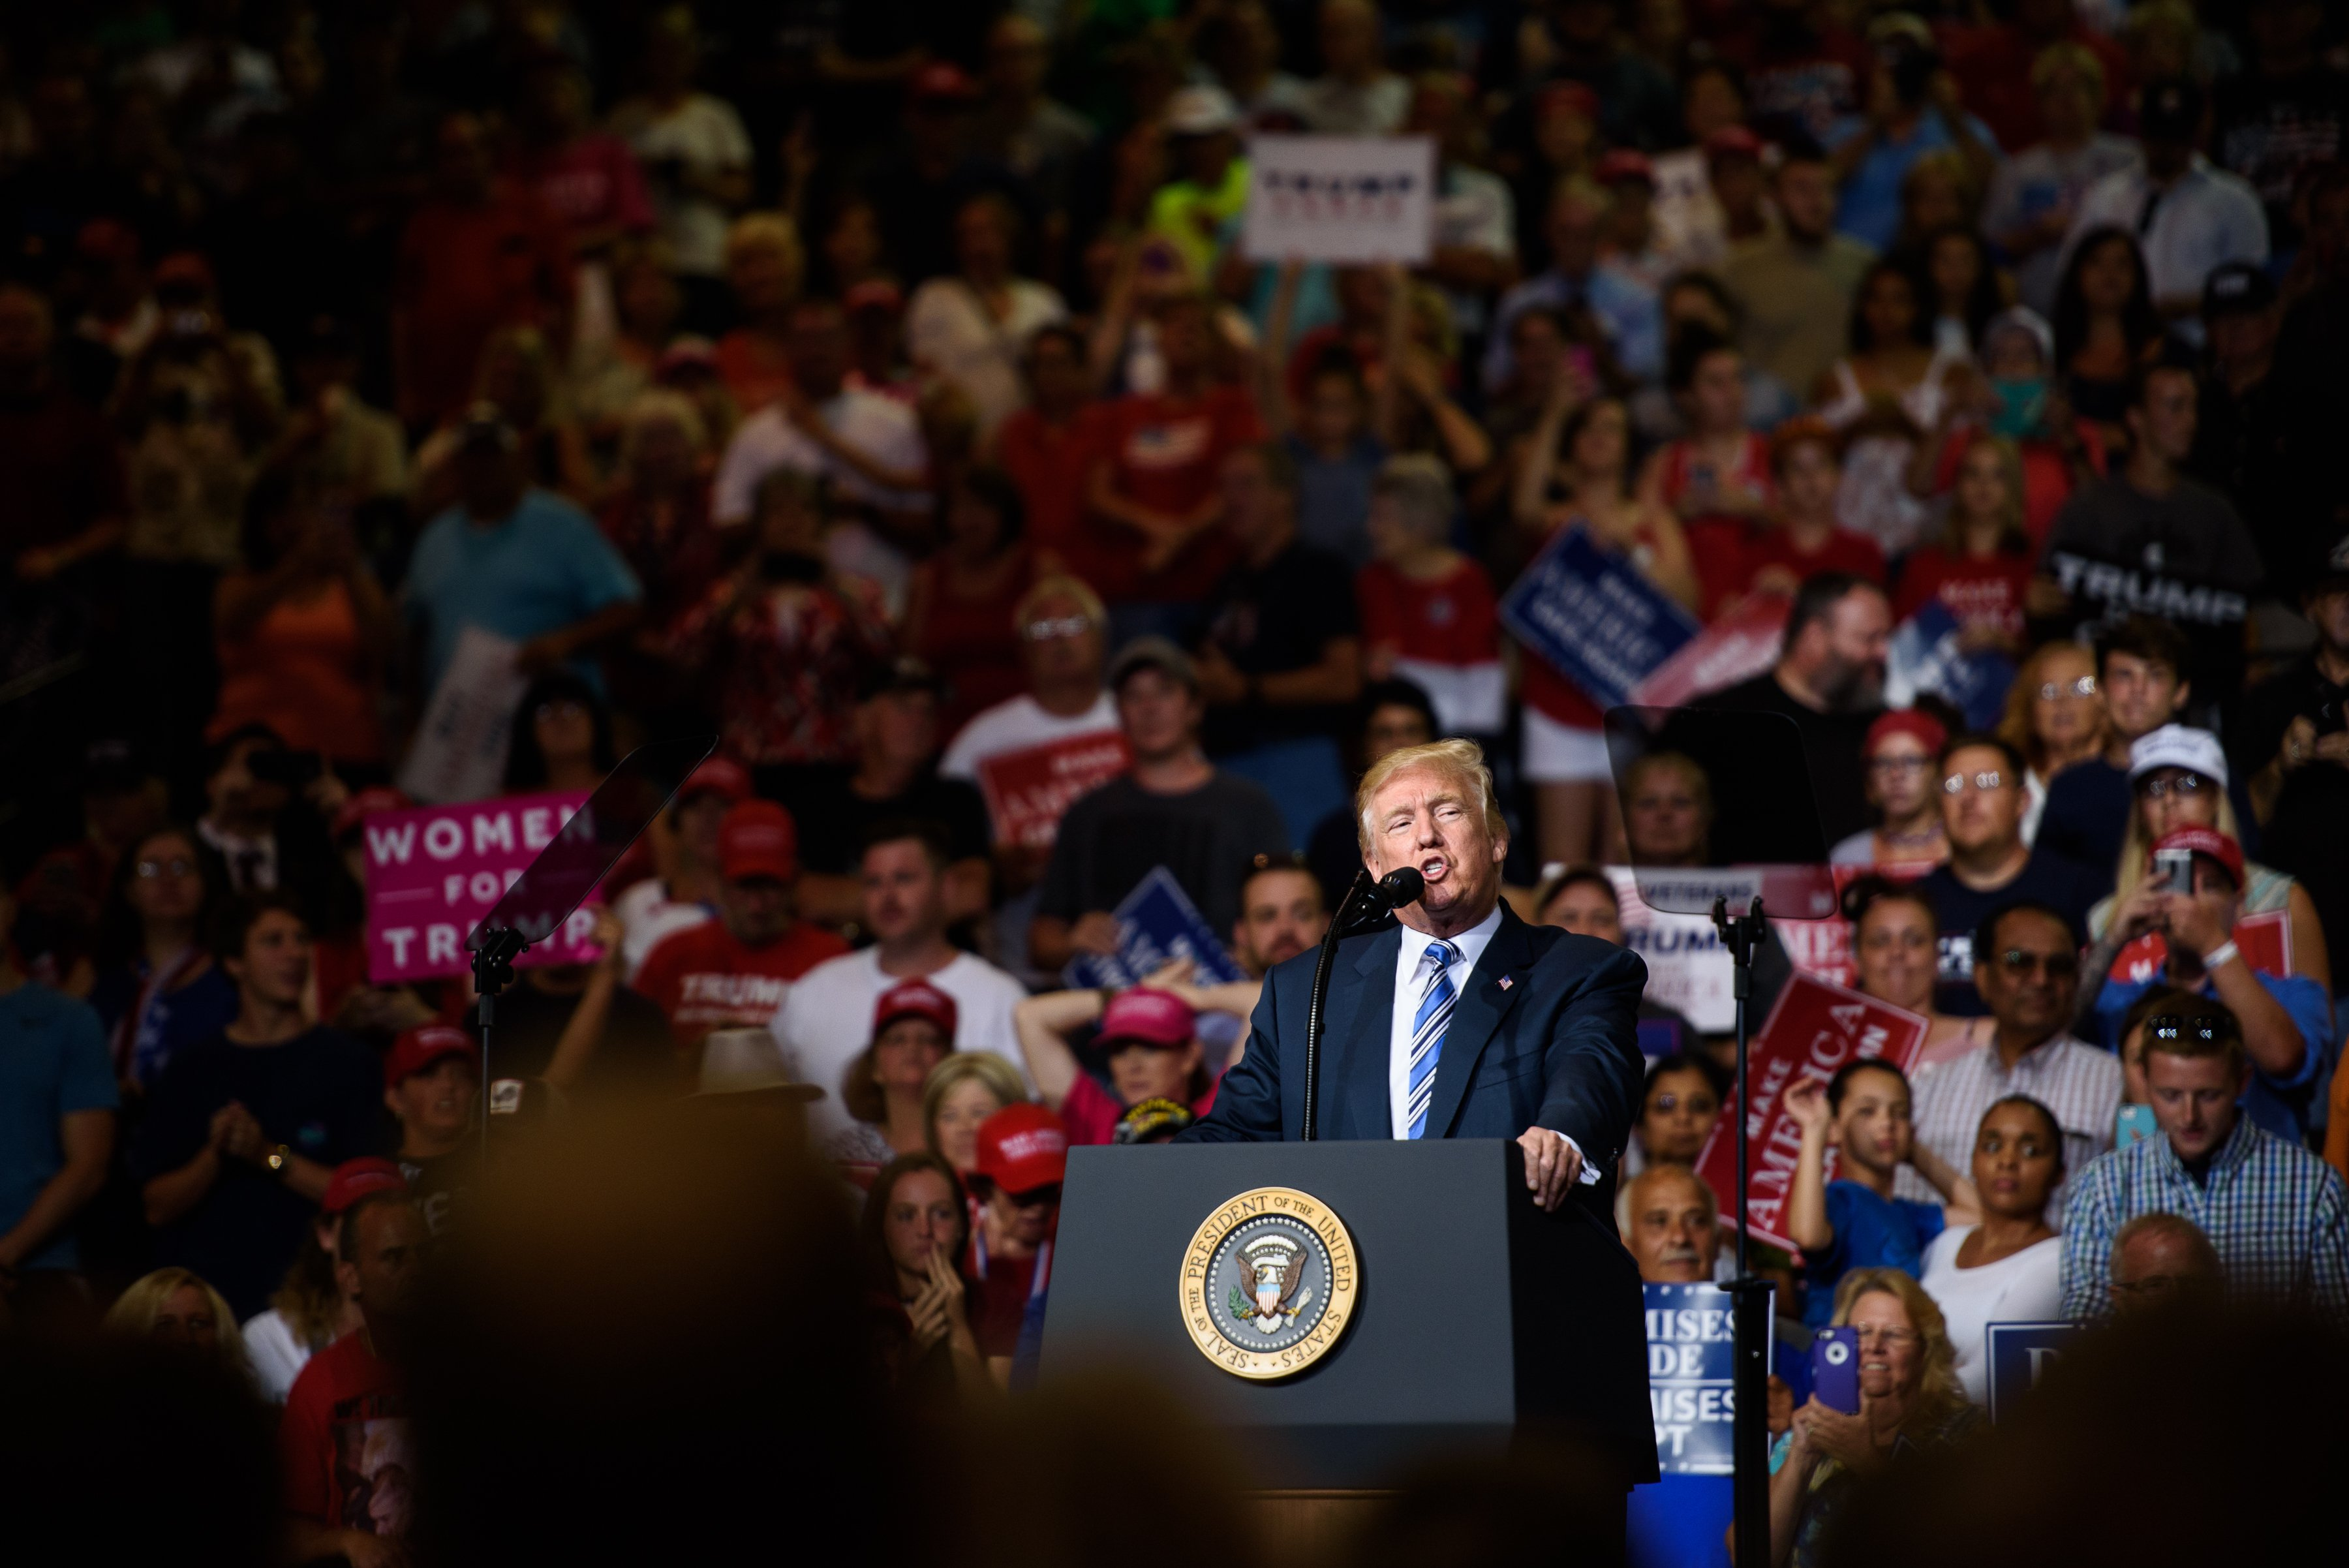 HUNTINGTON, WV - AUGUST 03: President Donald J. Trump speaks at his campaign rally at the Big Sandy Superstore Arena on August 3, 2017 in Huntington, West Virginia. (Photo by Justin Merriman/Getty Images)